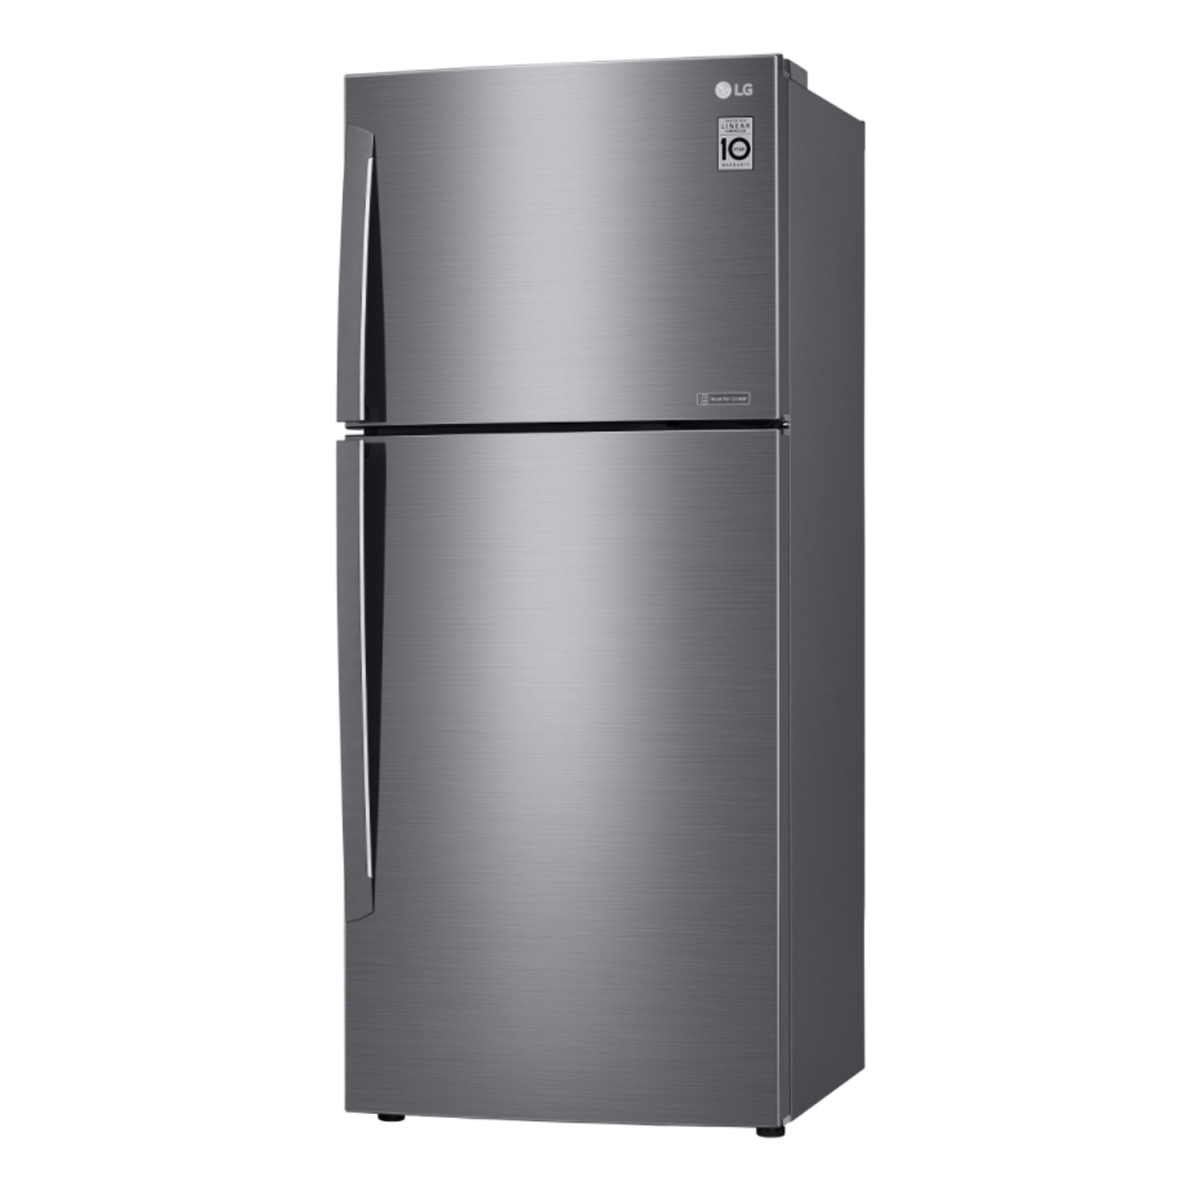 LG GT-442SDC 441Litres Top Mount Fridge with Door Cooling 116804